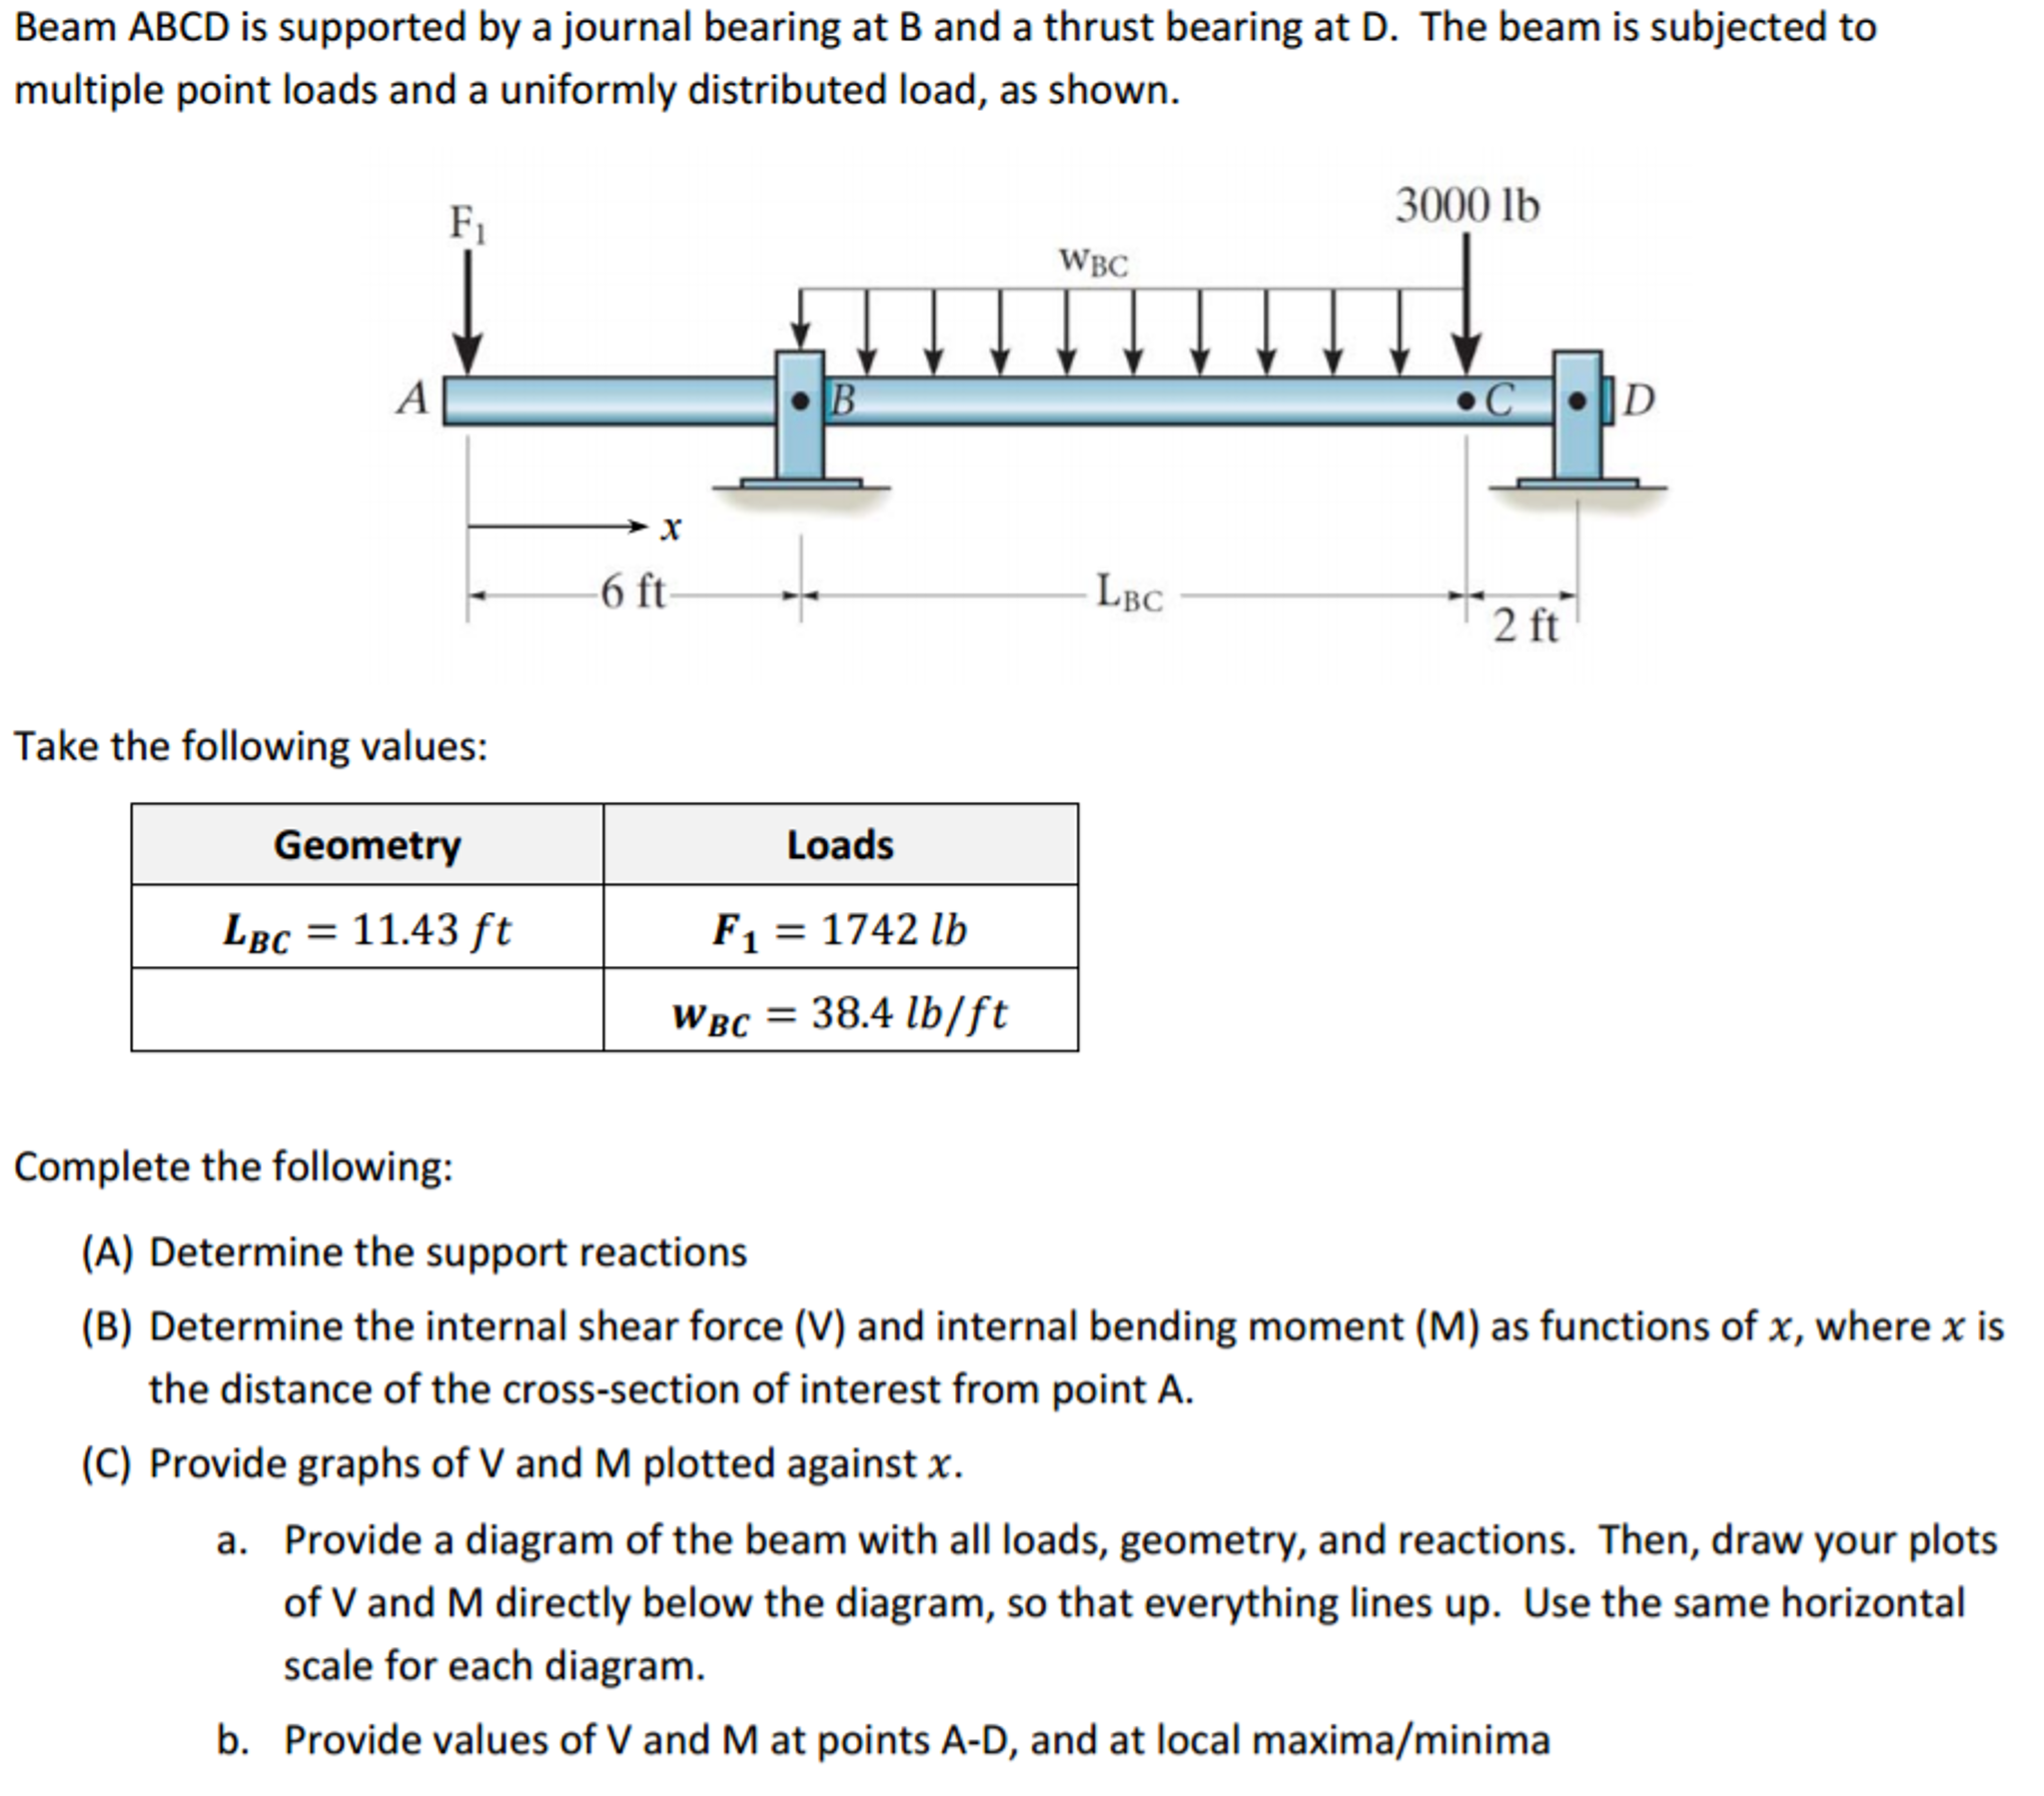 Civil D Draw Line Bearing Distance : Solved beam abcd is supported by a journal bearing at b